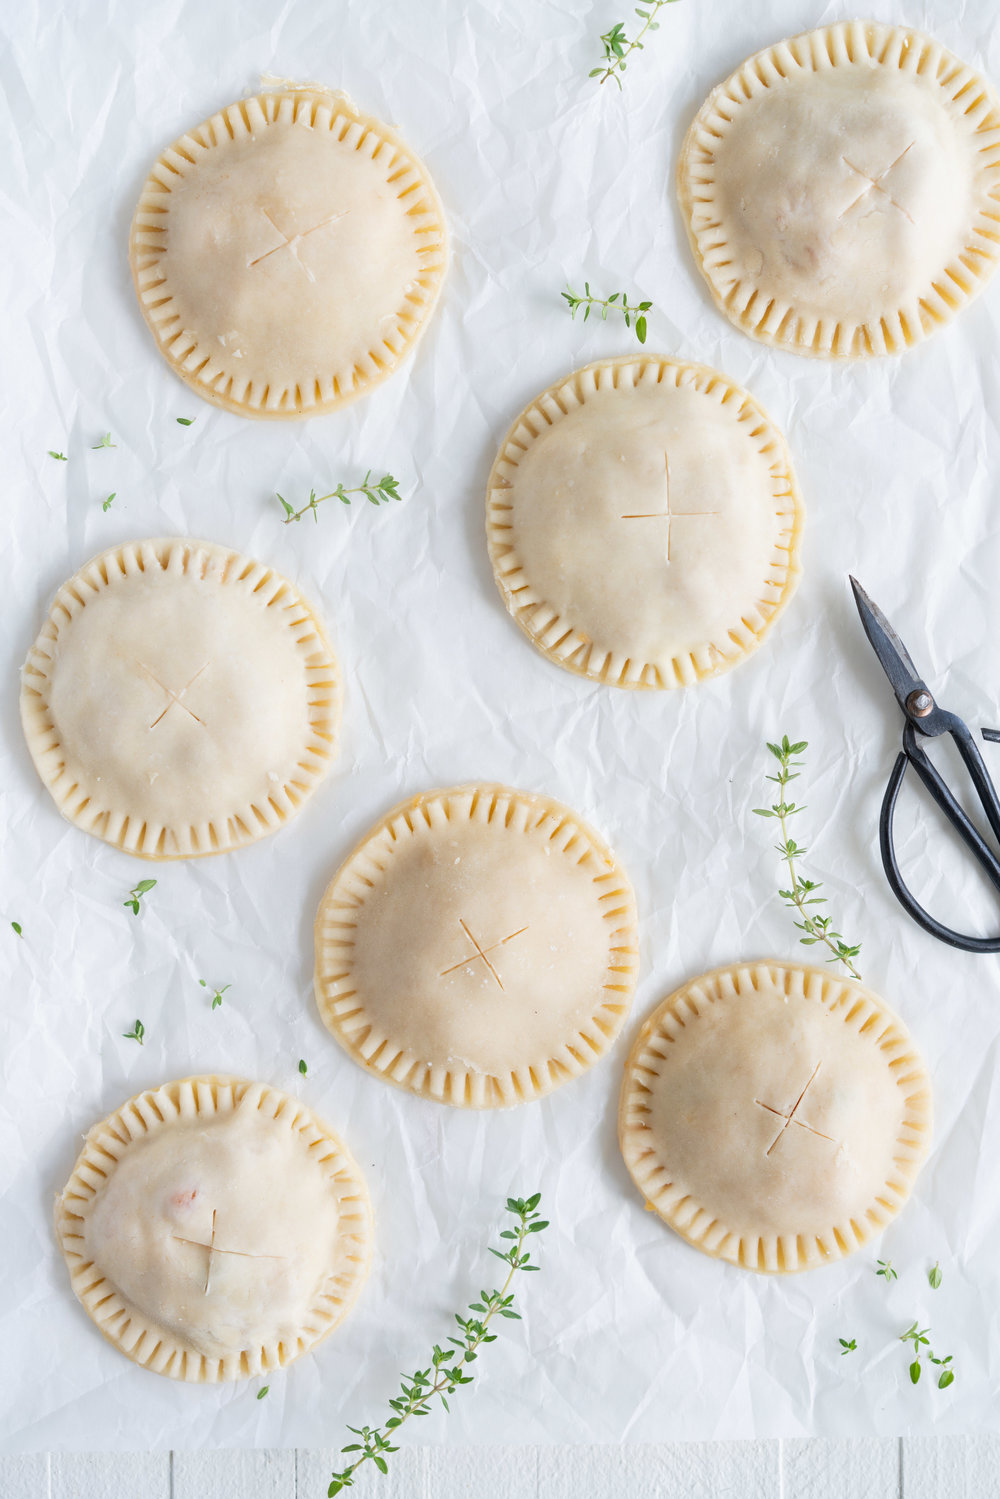 Peach and Thyme Hand pies - sweet, ripe peaches are enveloped in a tender flaky pie crust, and enhanced with the delicate flavour of thyme. #handpies #peachpies #pie #baking #peach #thyme